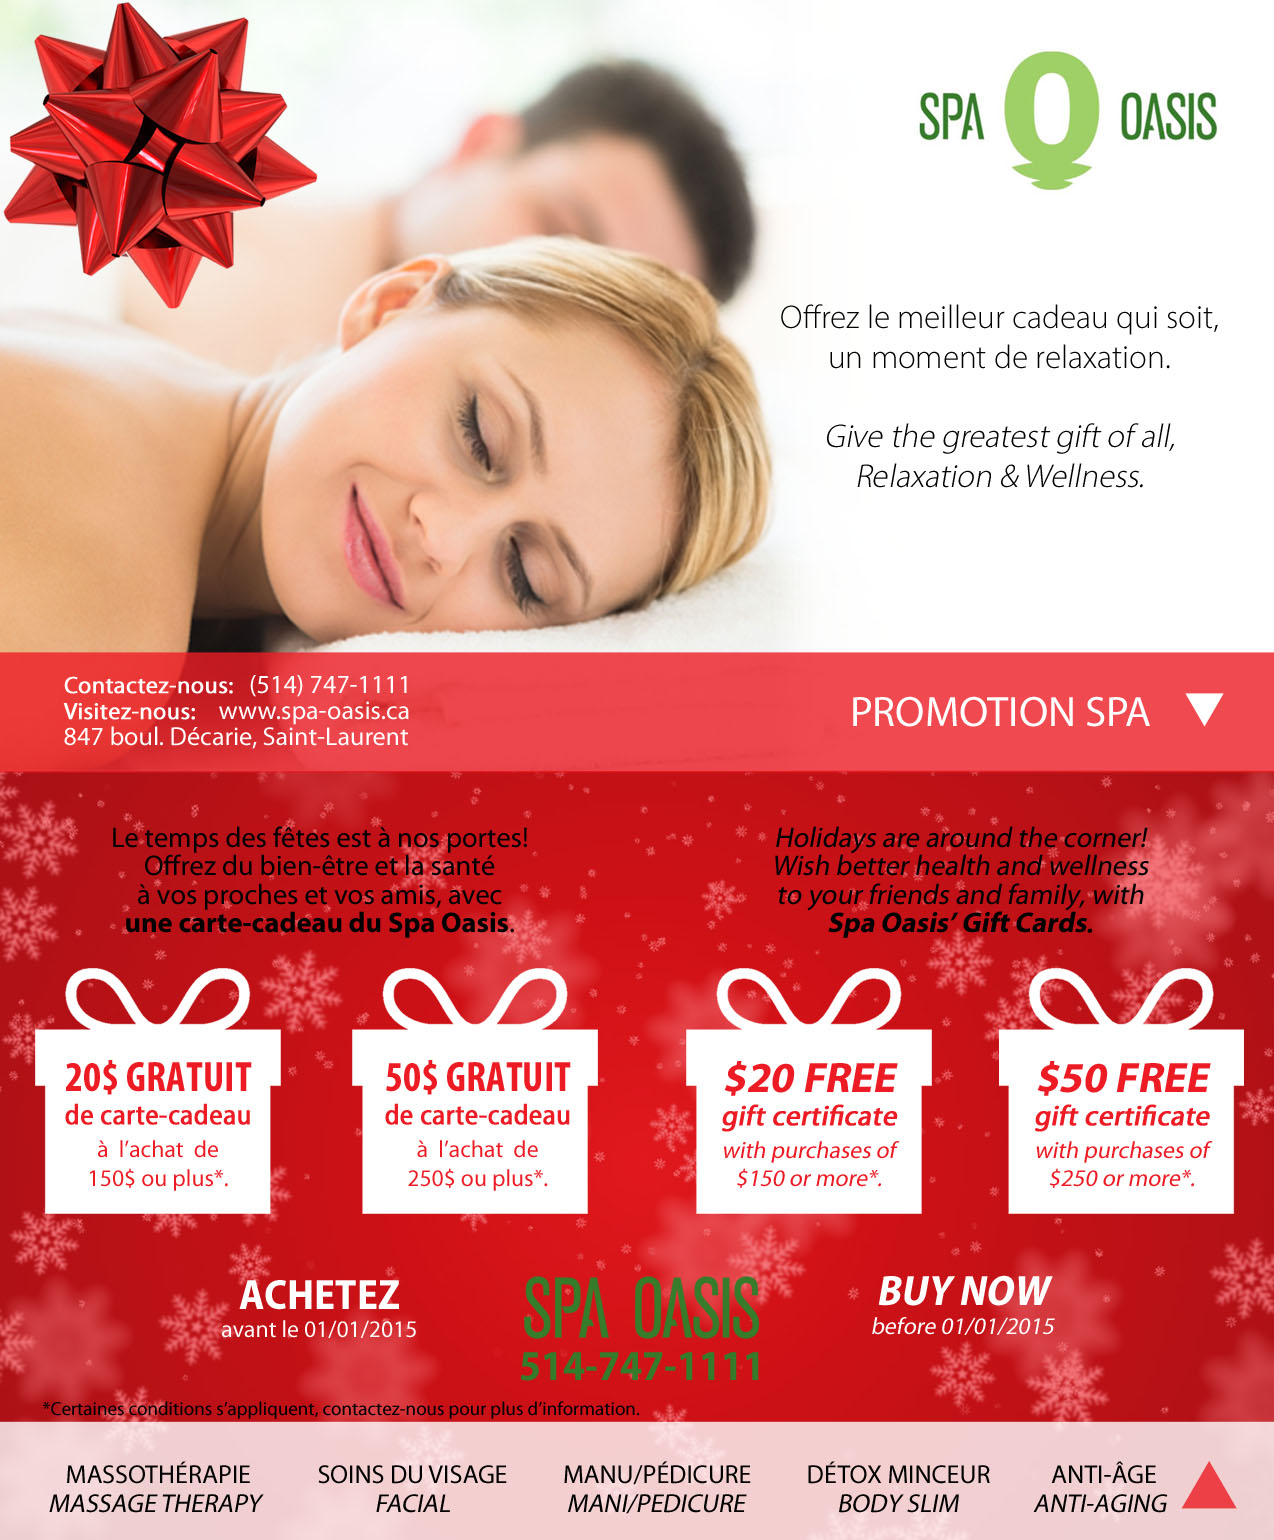 montreal-spa-oasis-holiday-promotion-for-christmas-gift-15